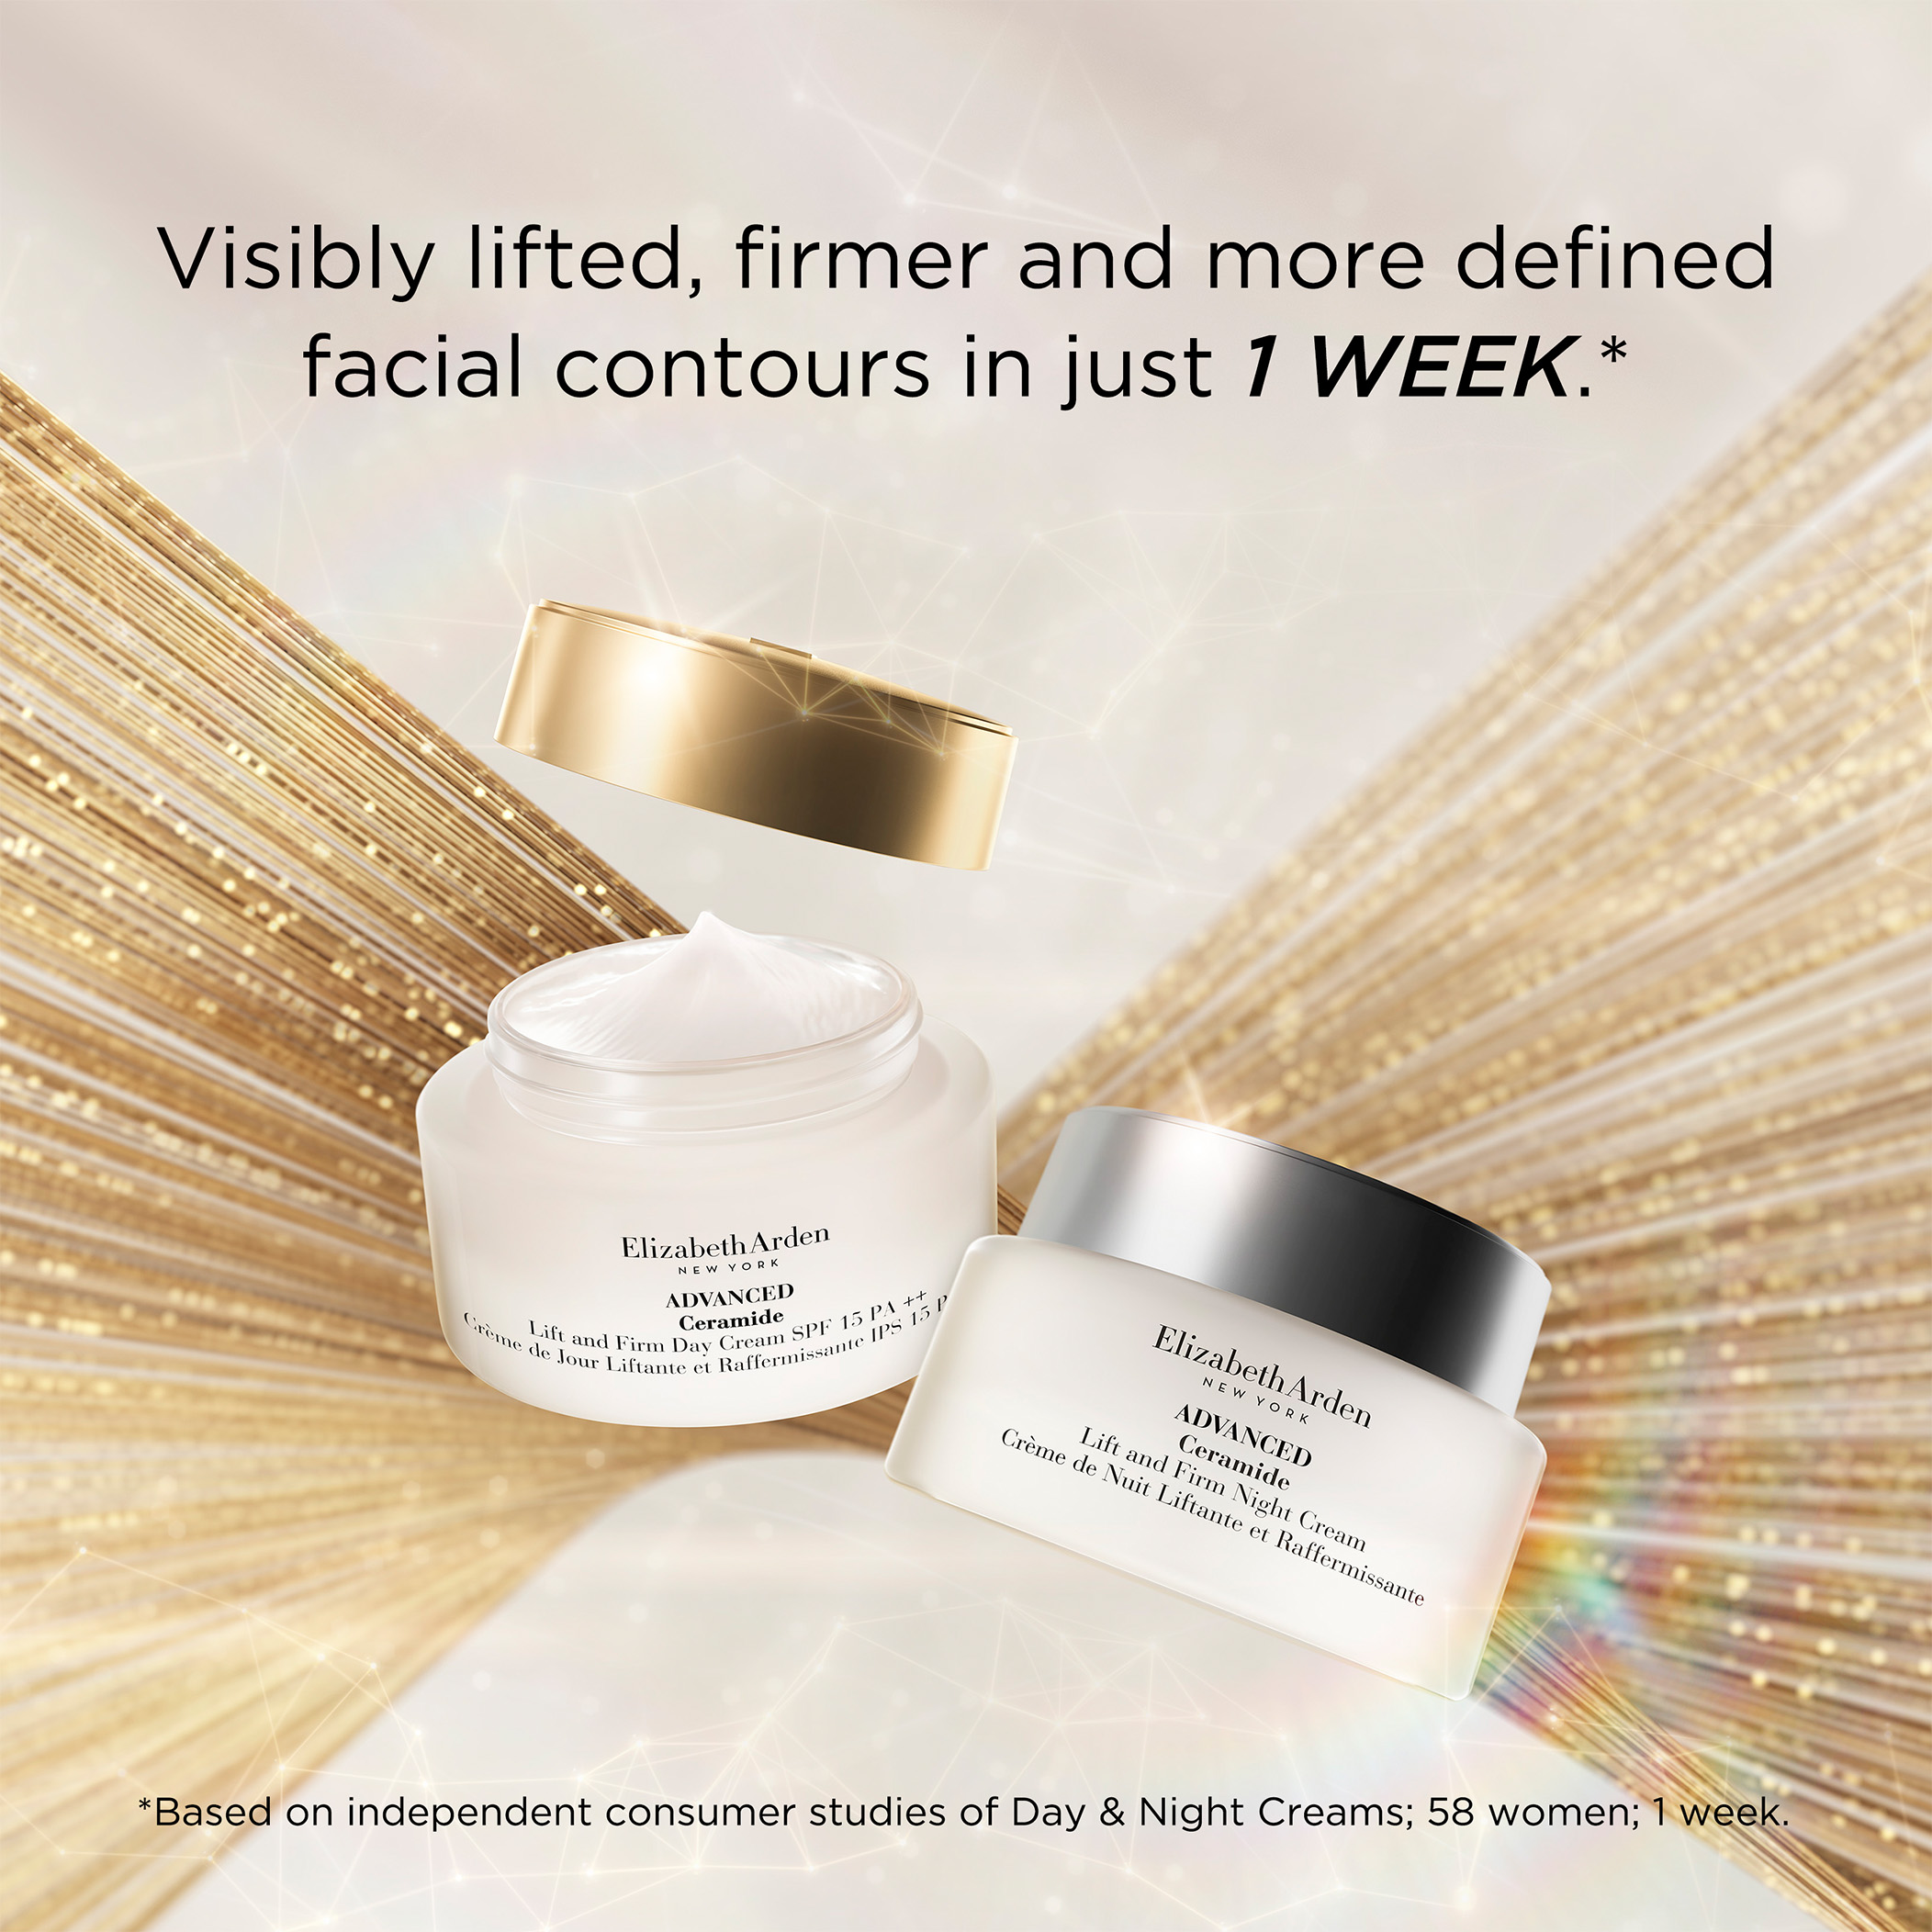 Visible lifted, firmer and more defined facial contours in just 1 week based on independent consumer studies of Day and Night Creams, 58 women, 1 week.